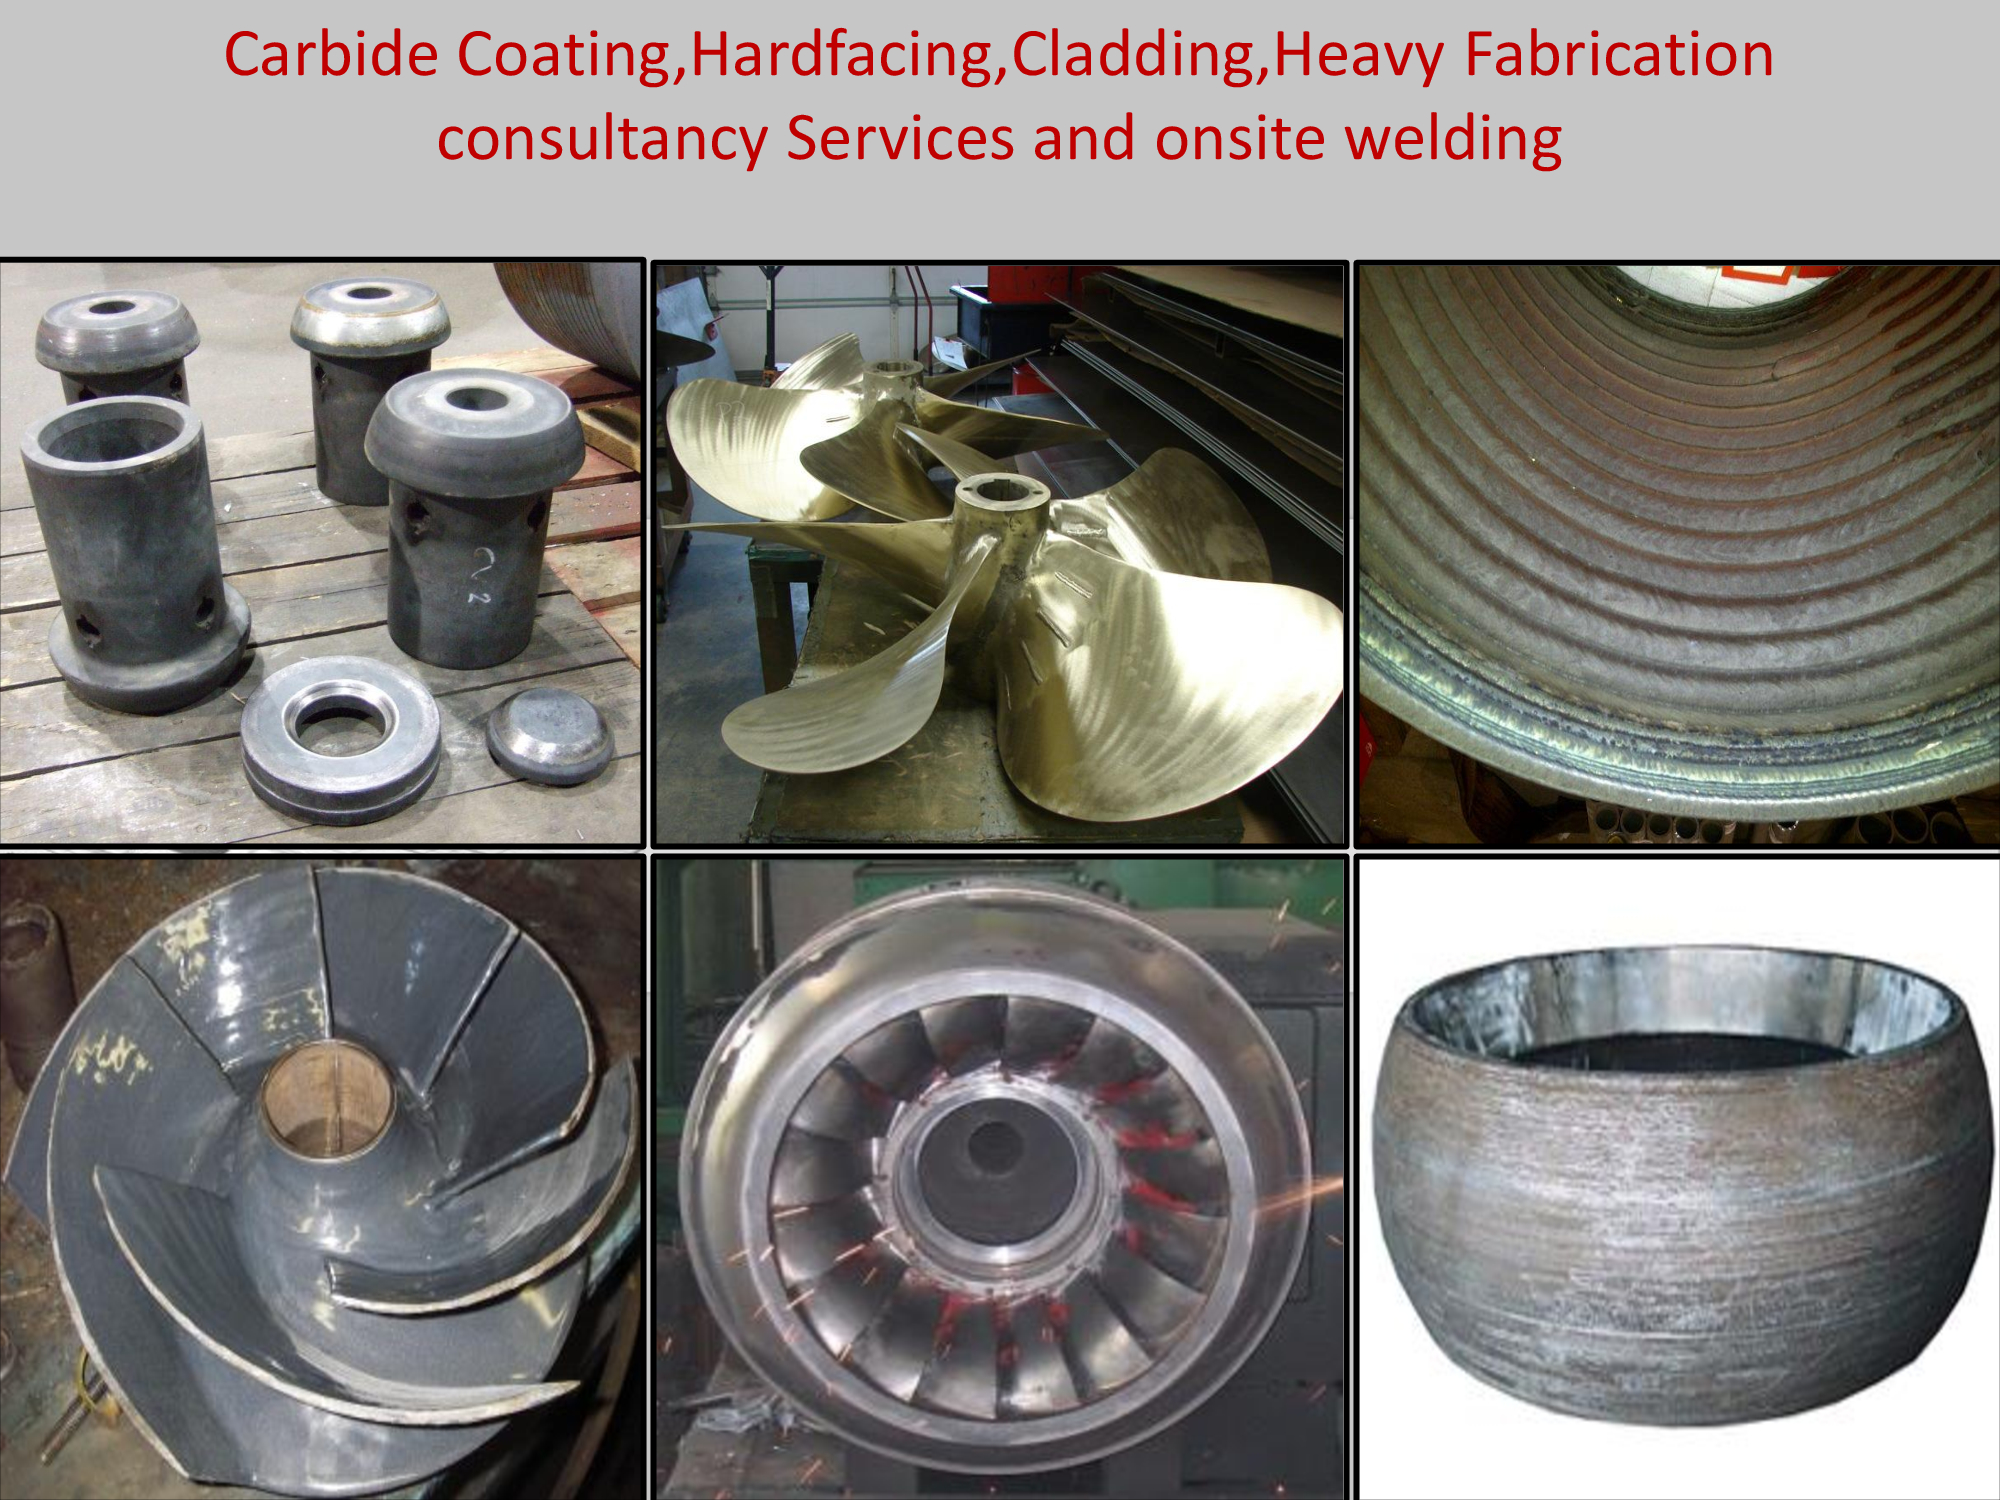 consultant for welding,hardfacing,heavy fabrication,site welding,hardf